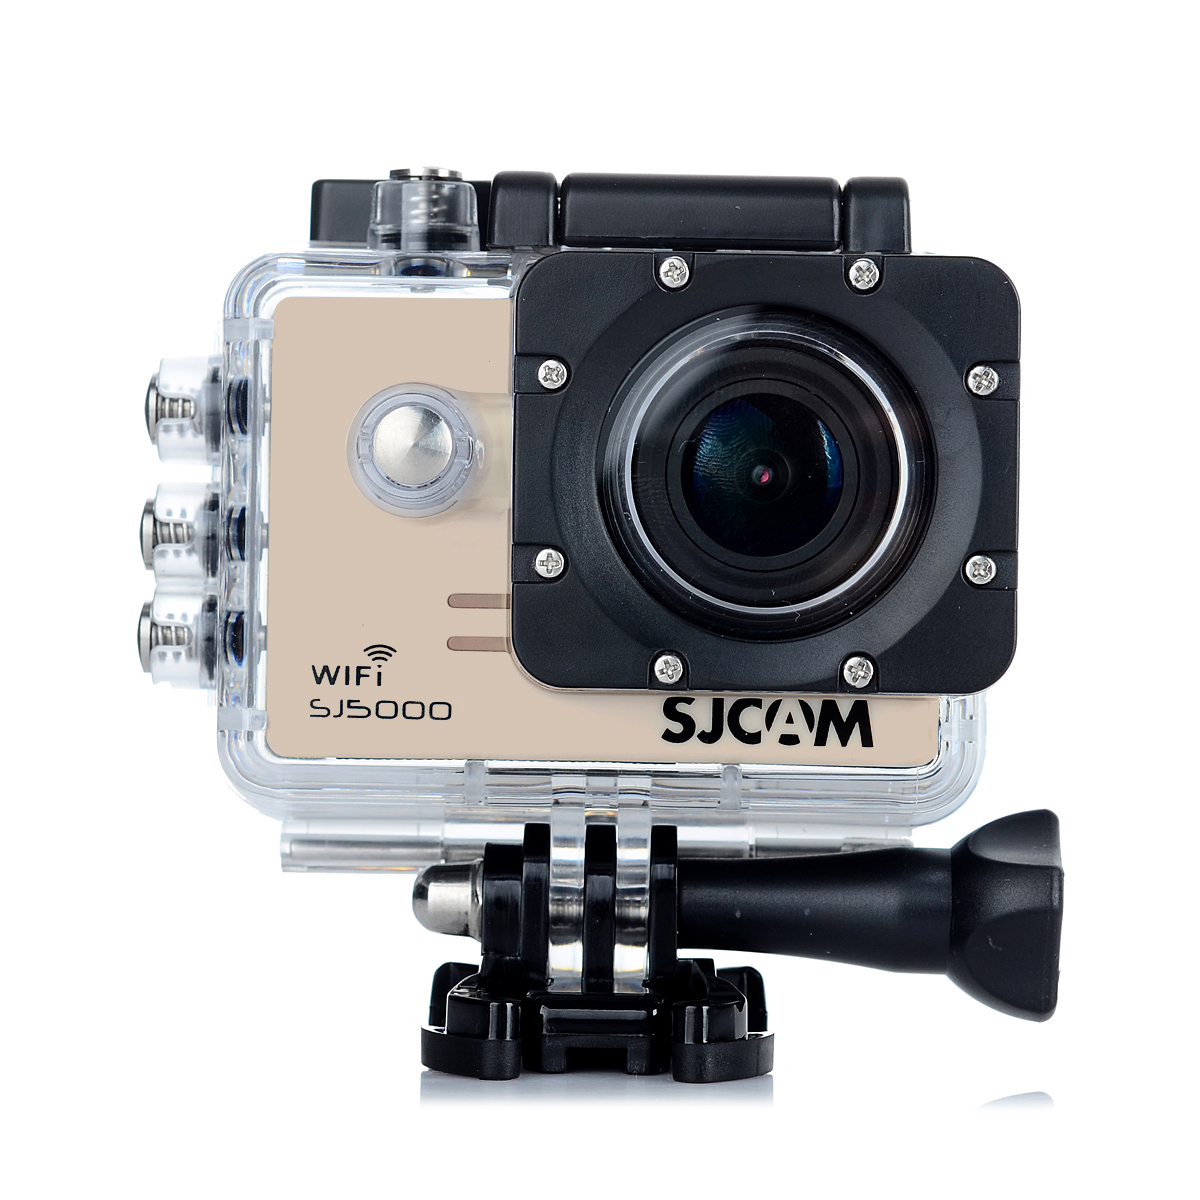 Original SJCAM SJ5000 WiFi Action HD Camera 14MP Novatek 96655 1080P Waterproof Gold